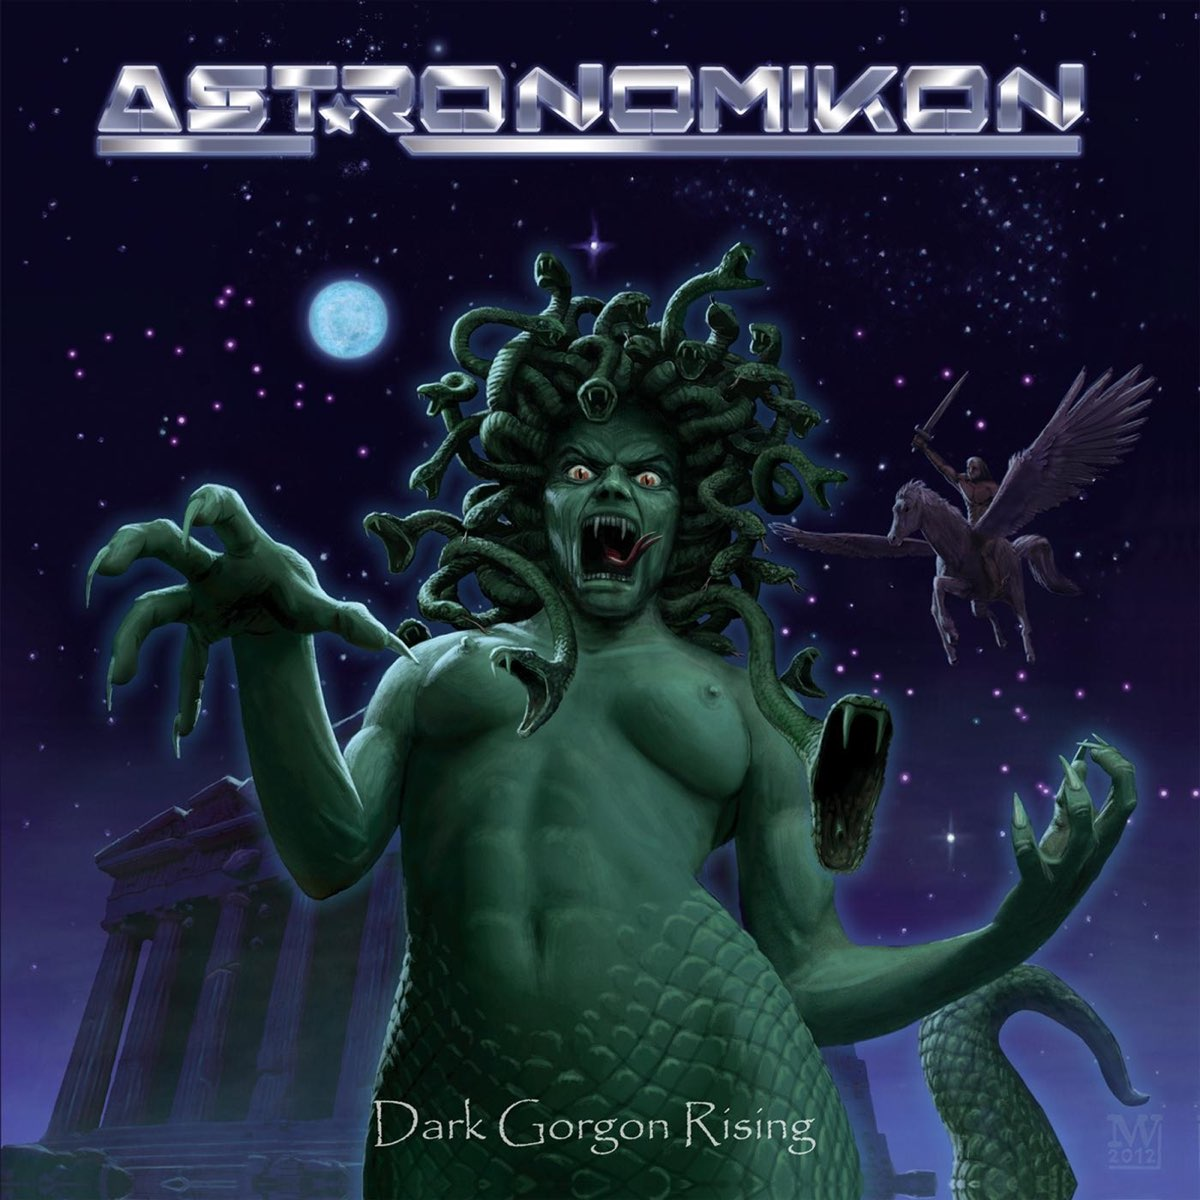 Dark Gorgon Rising by Astronomikon cover art